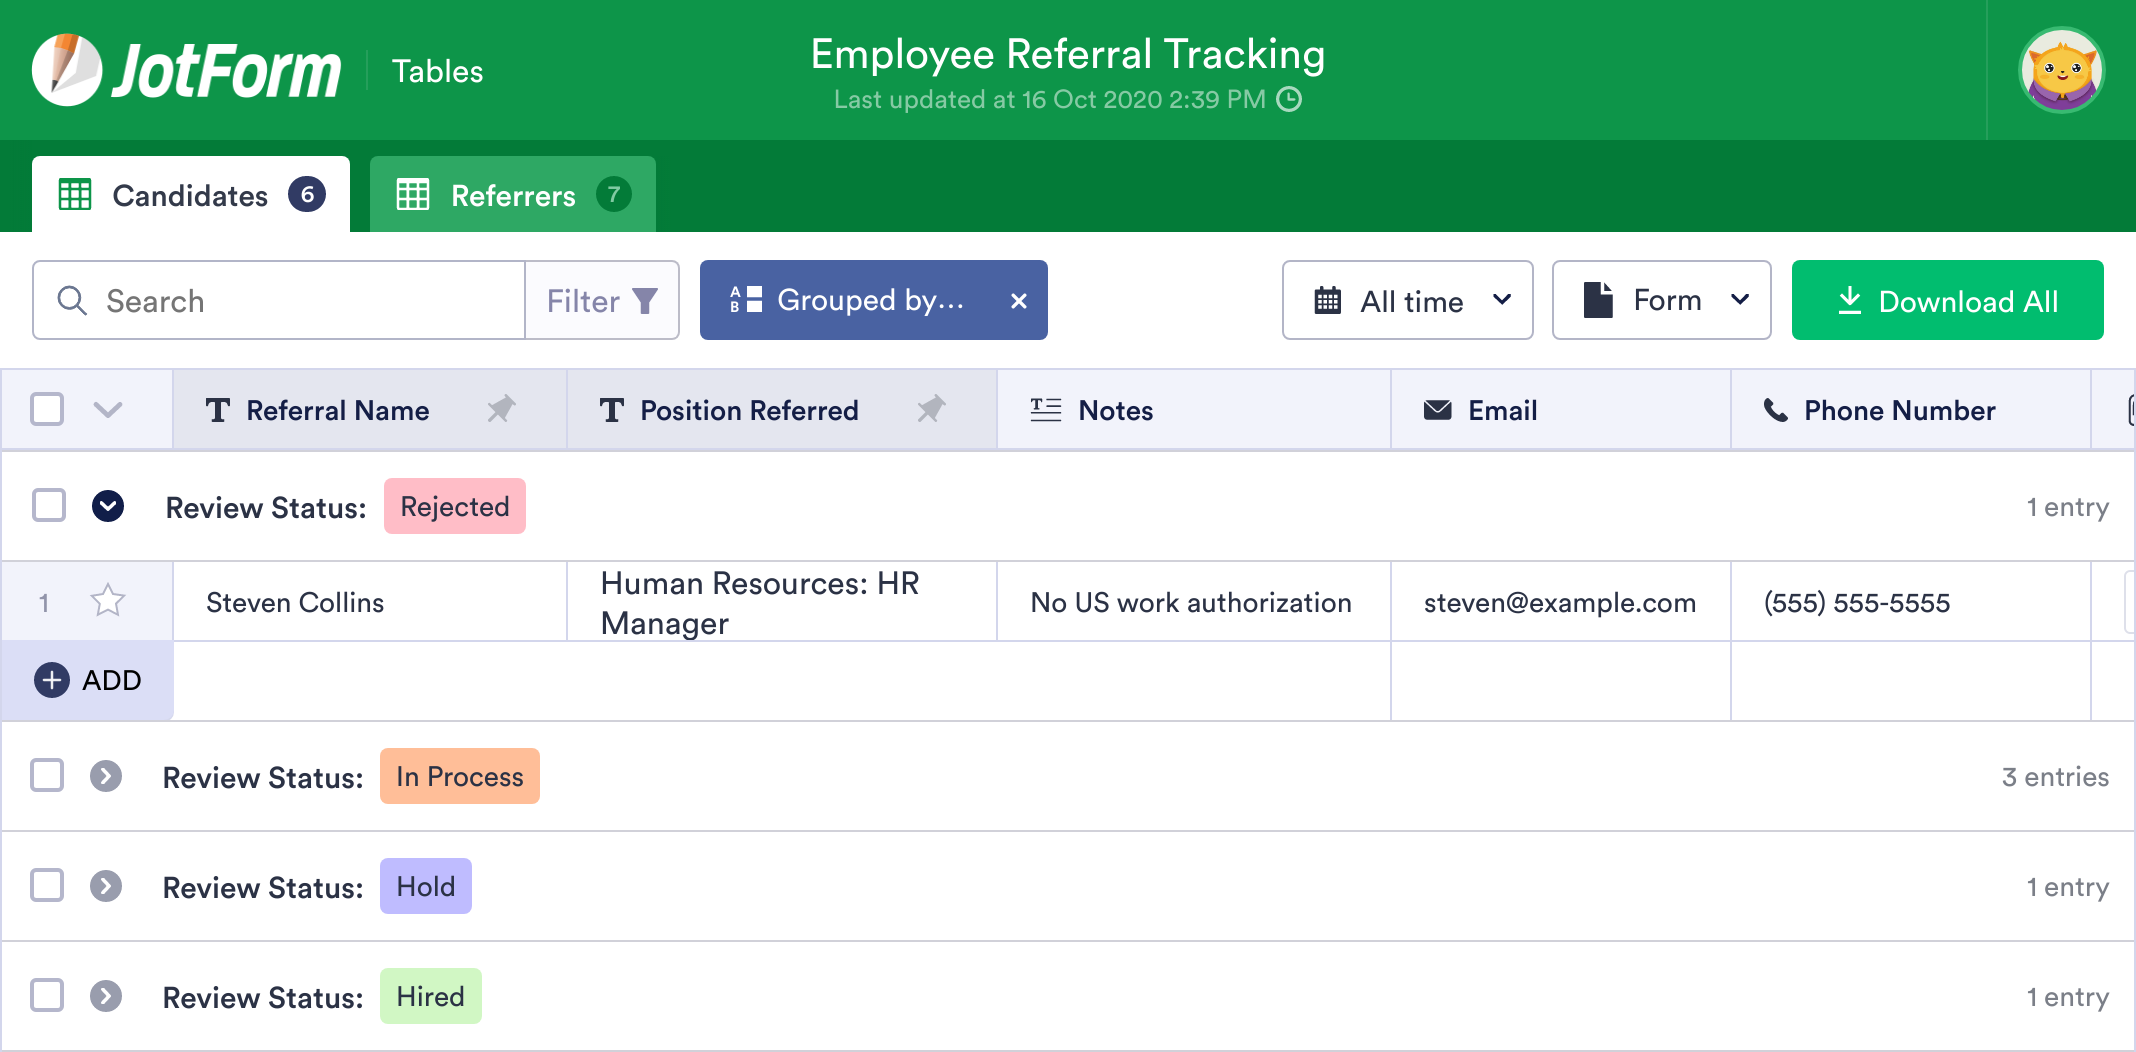 Employee Referral Tracking